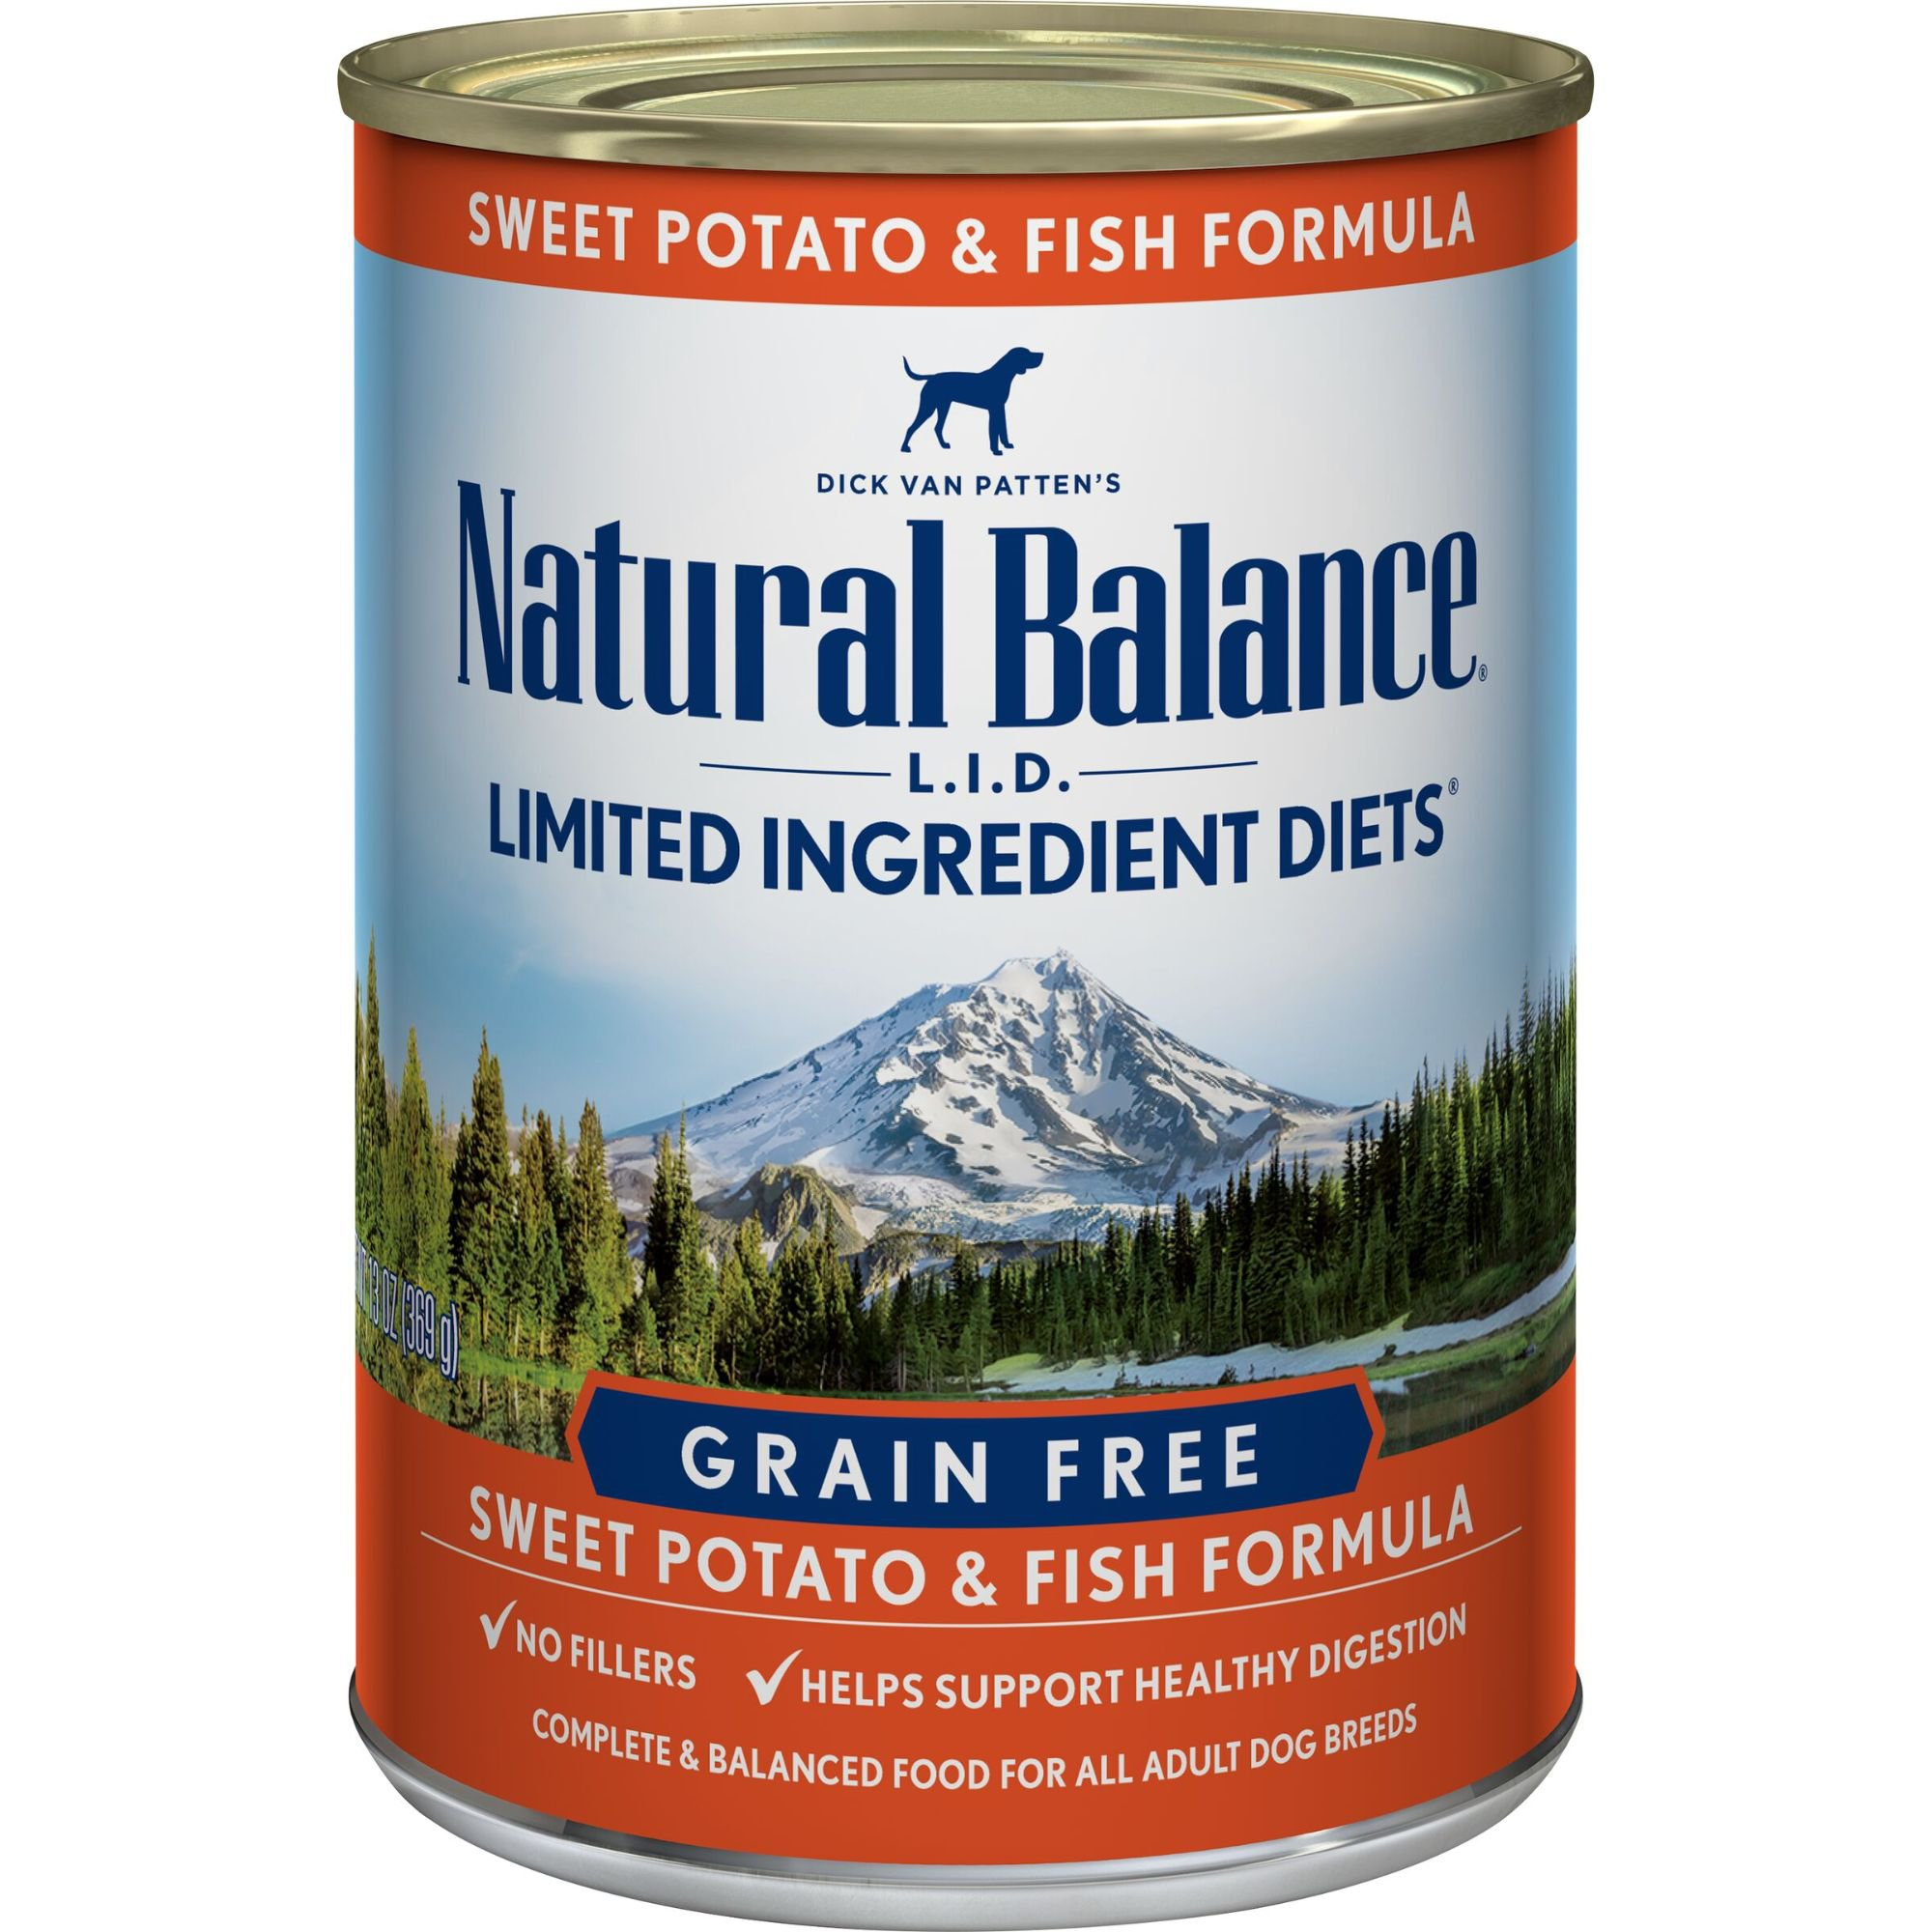 Natural Balance Limited Ingredient Diets Sweet Potatoes & Fish Canned Dog Food